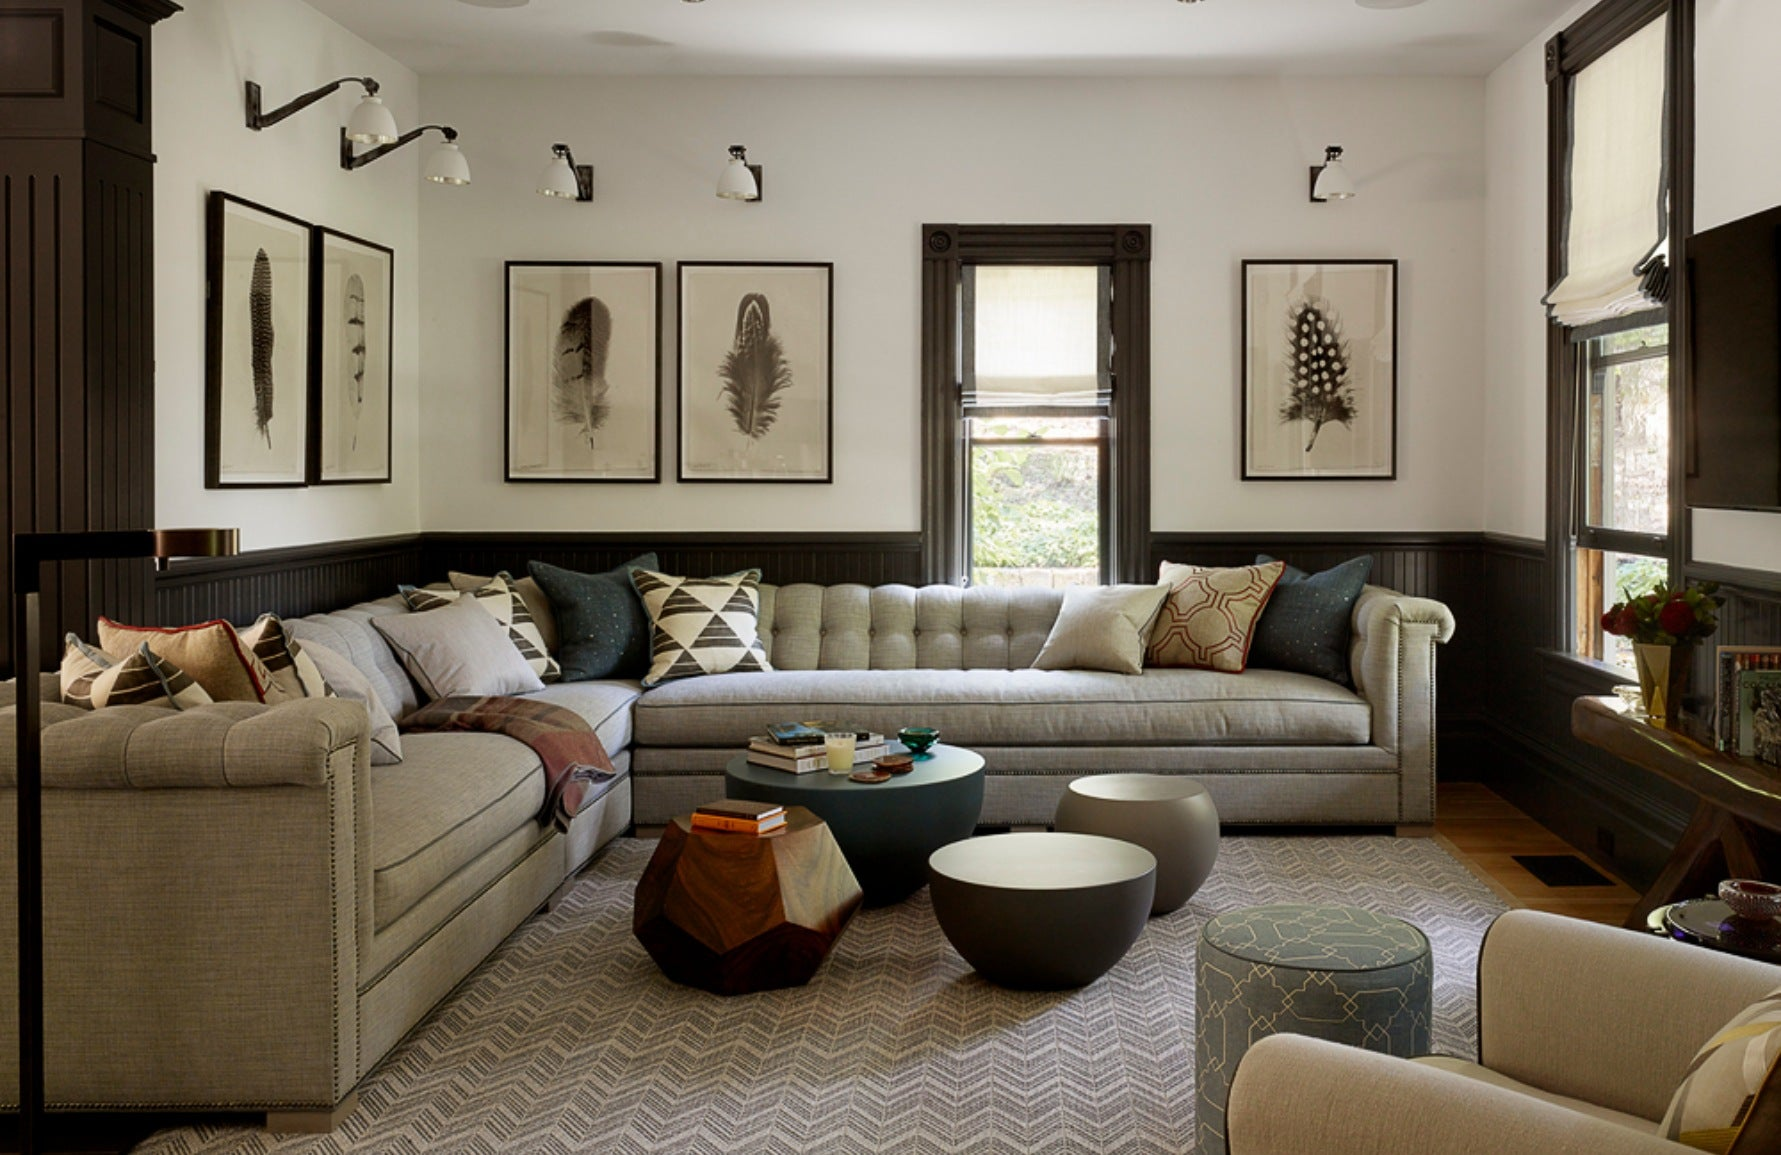 12 Small Living Room Layout & Design Ideas | Expert Tips | LuxDeco.com